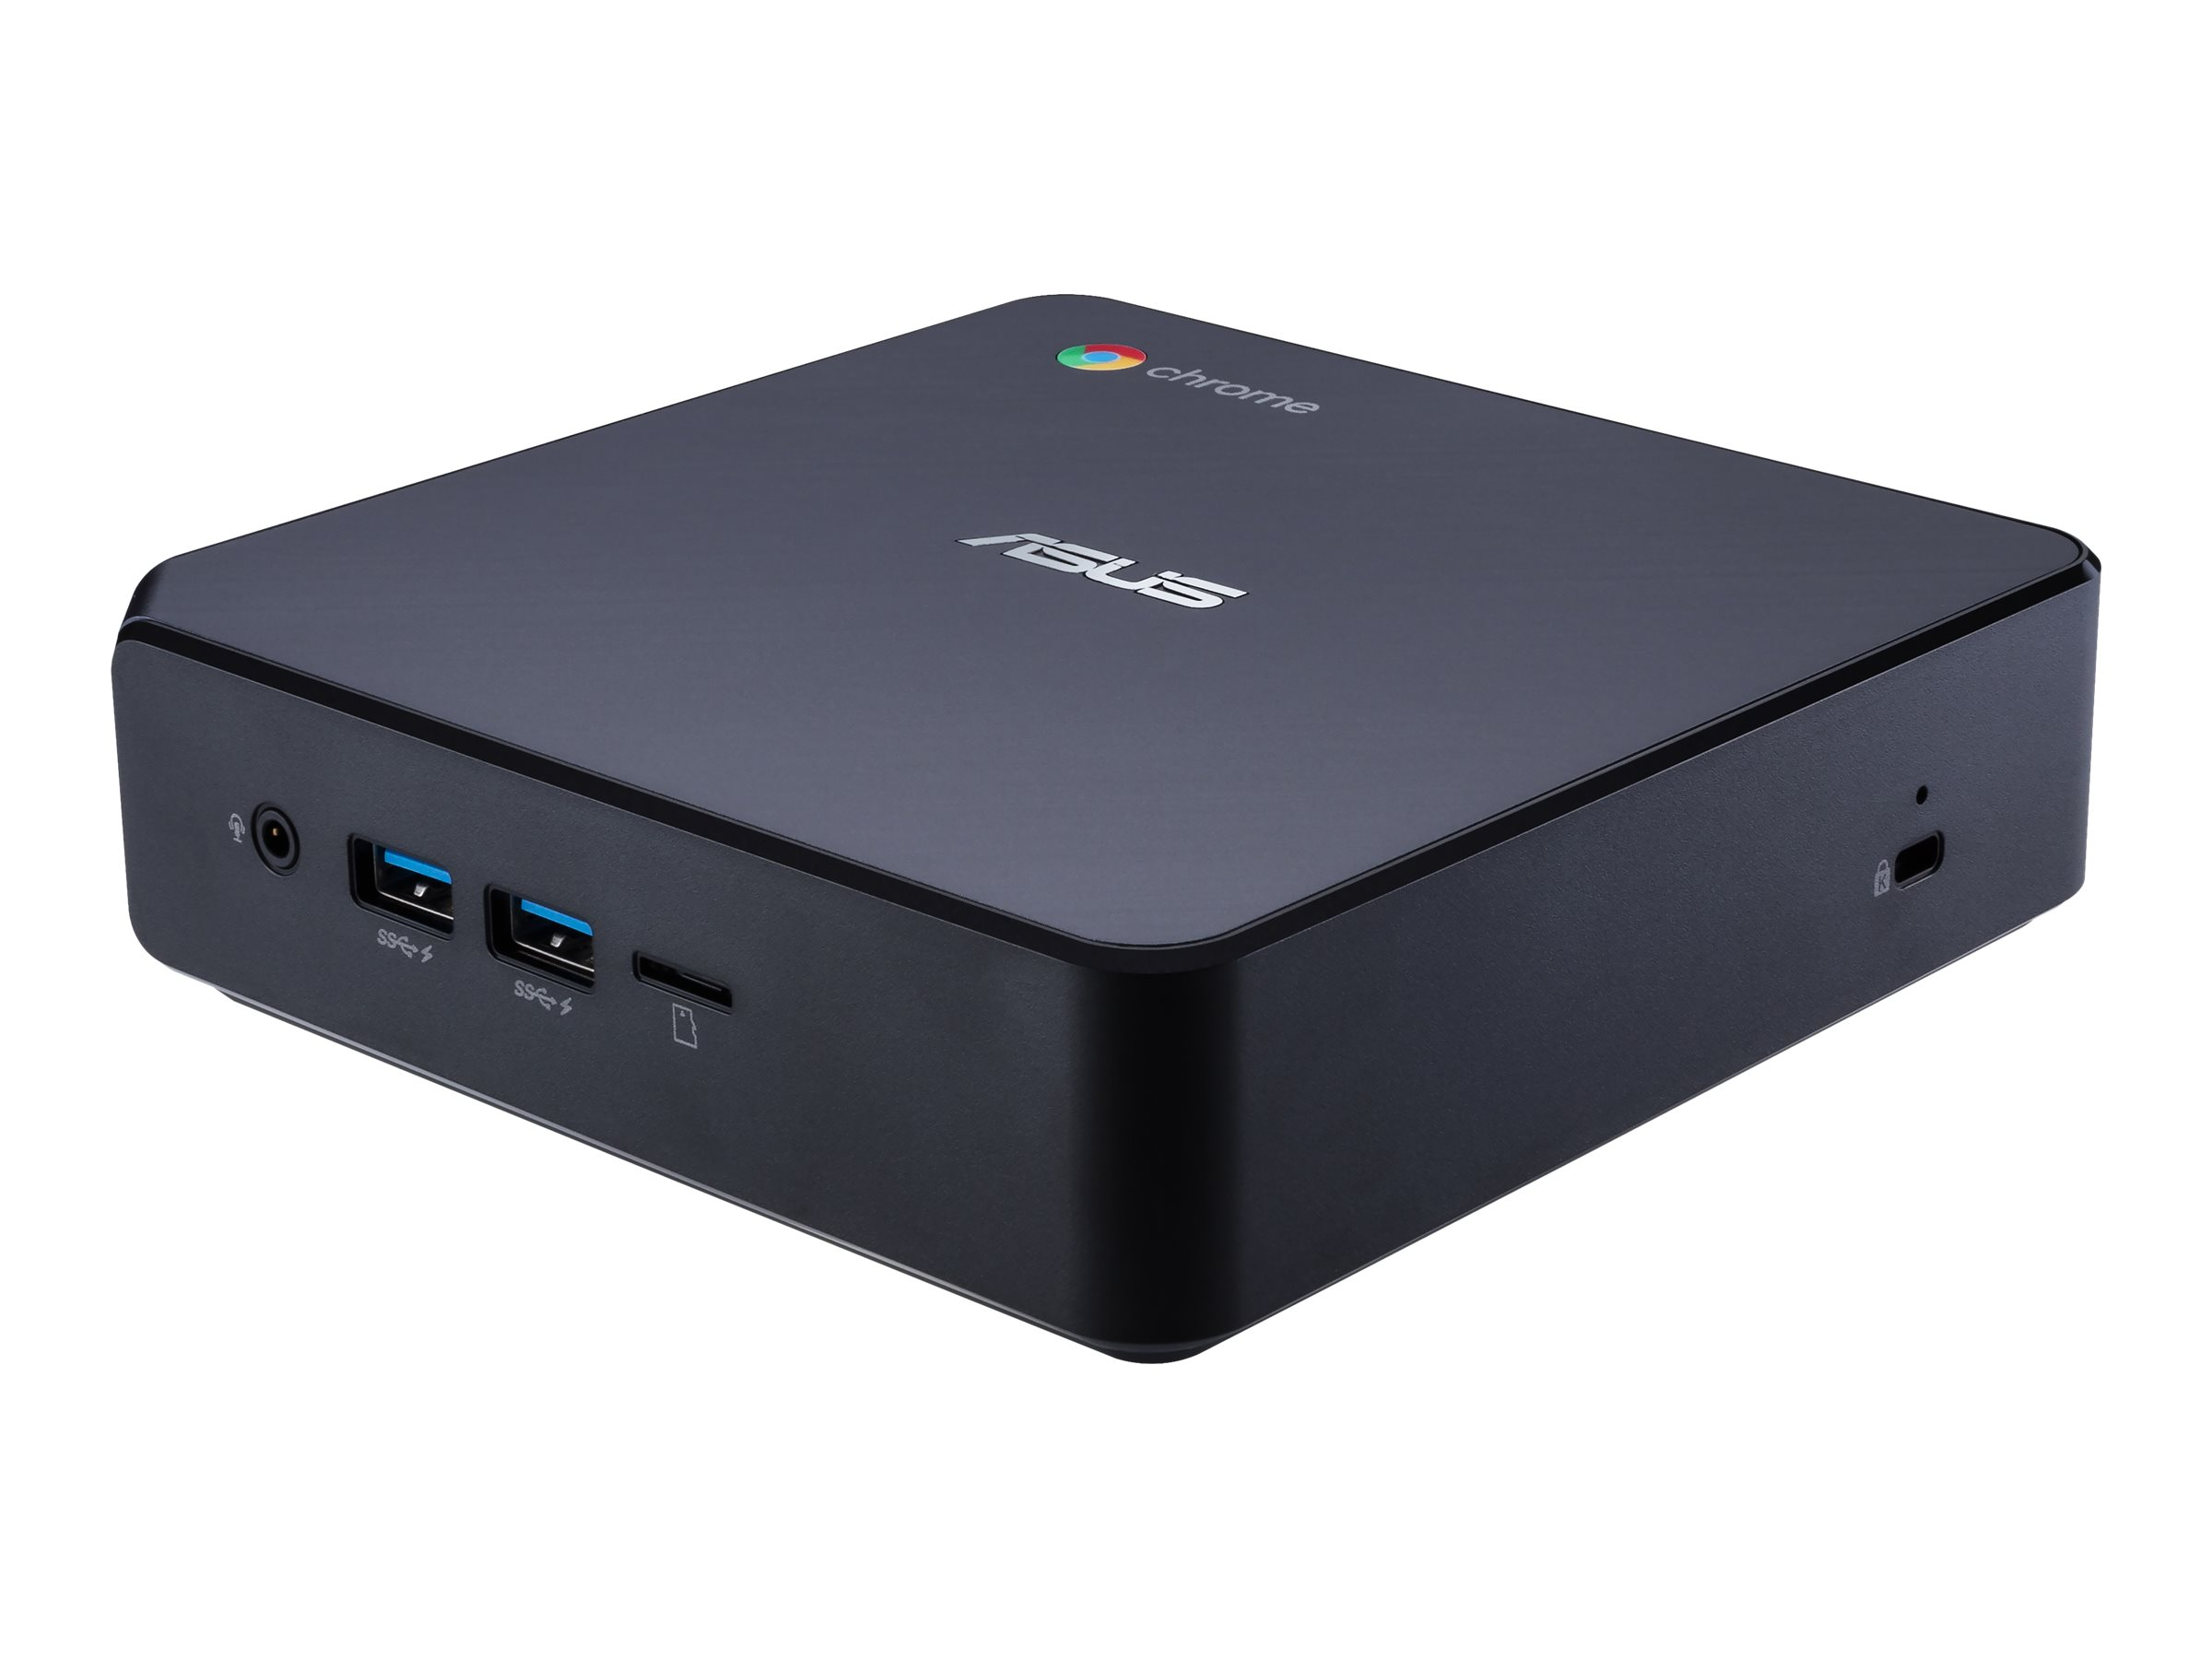 ASUS Chromebox 3 N017U - mini PC - Celeron 3865U 1.8 GHz - 4 GB - 32 GB